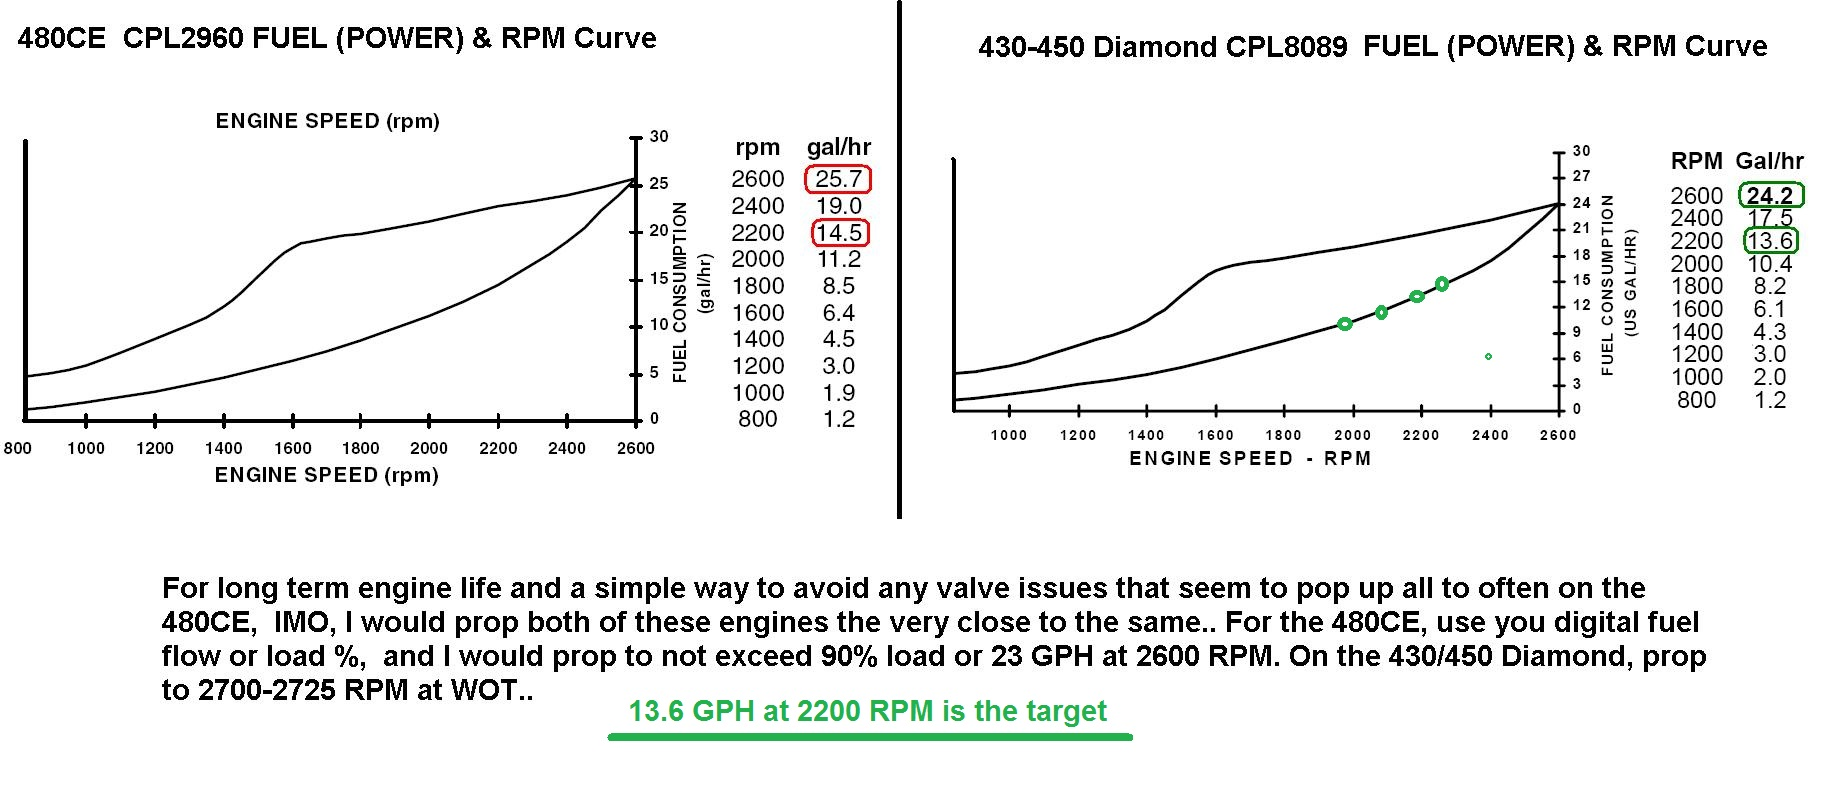 480CE vs 450 Diamond Fuel Curves